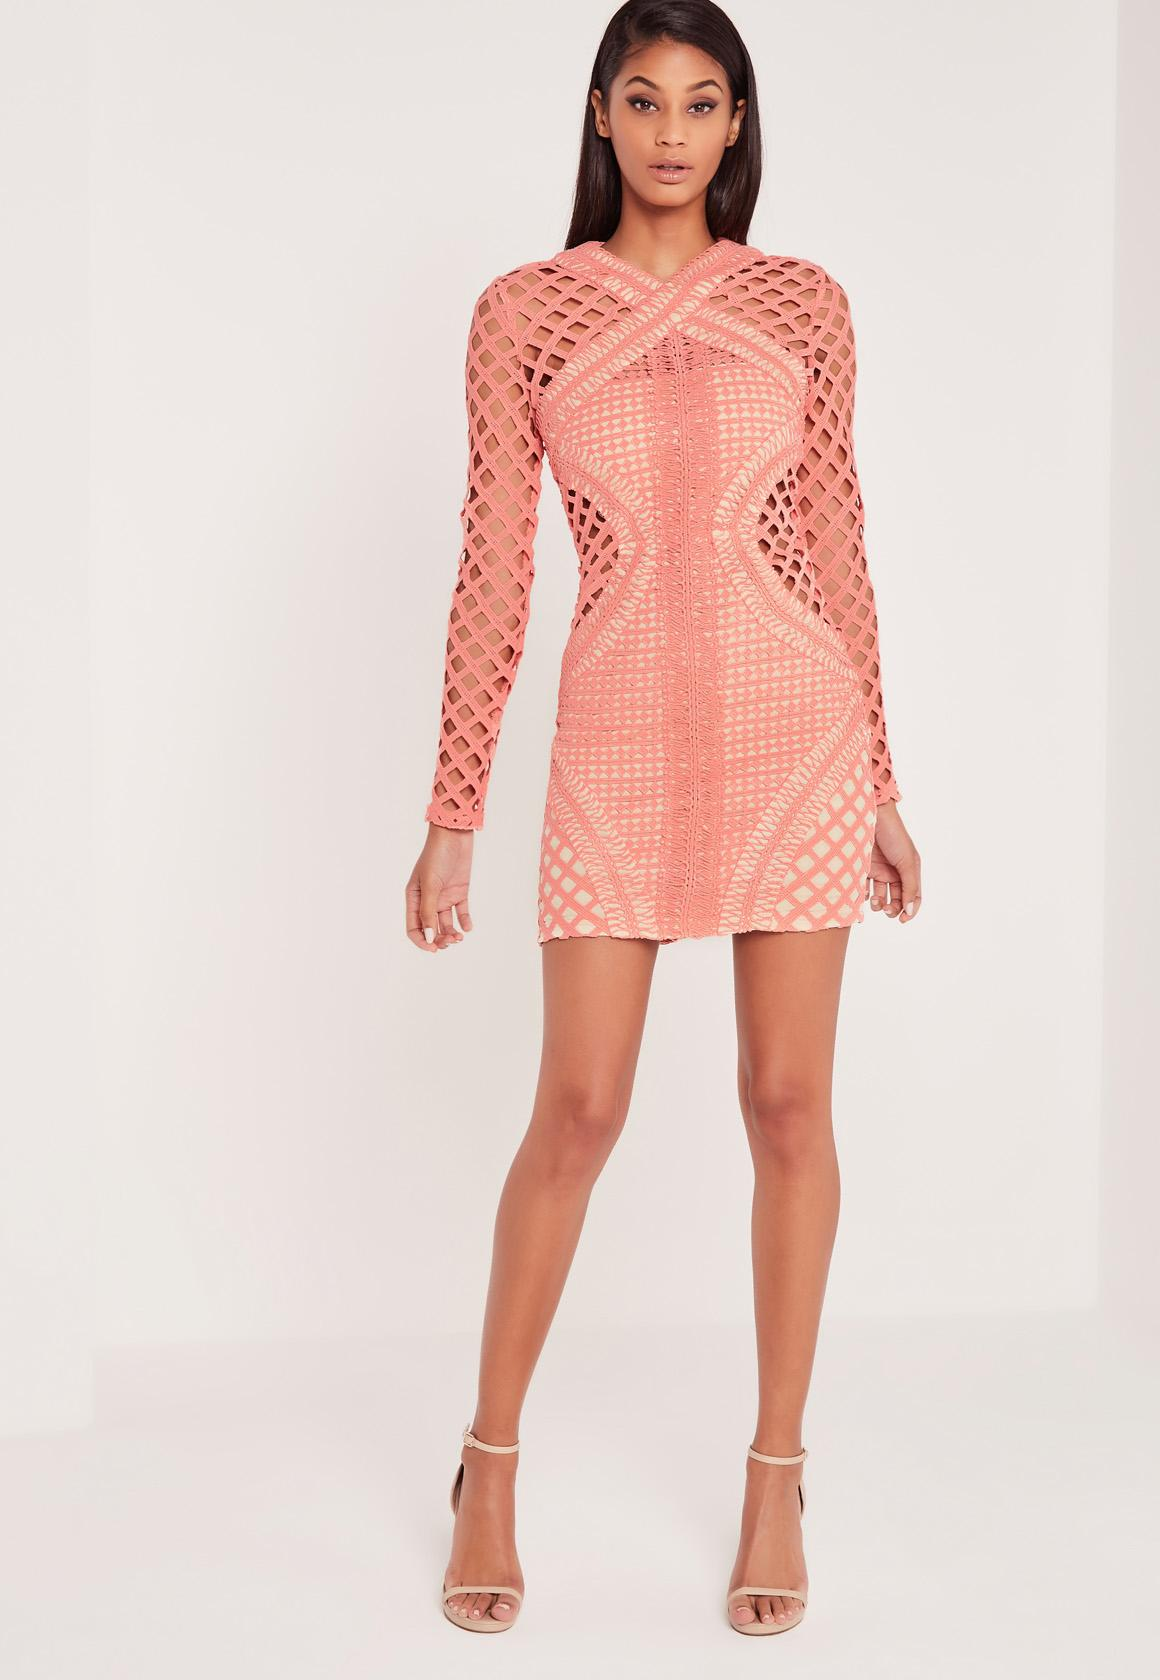 Carli Bybel Long Sleeve Lace Cut Out Bodycon Dress Pink | Missguided